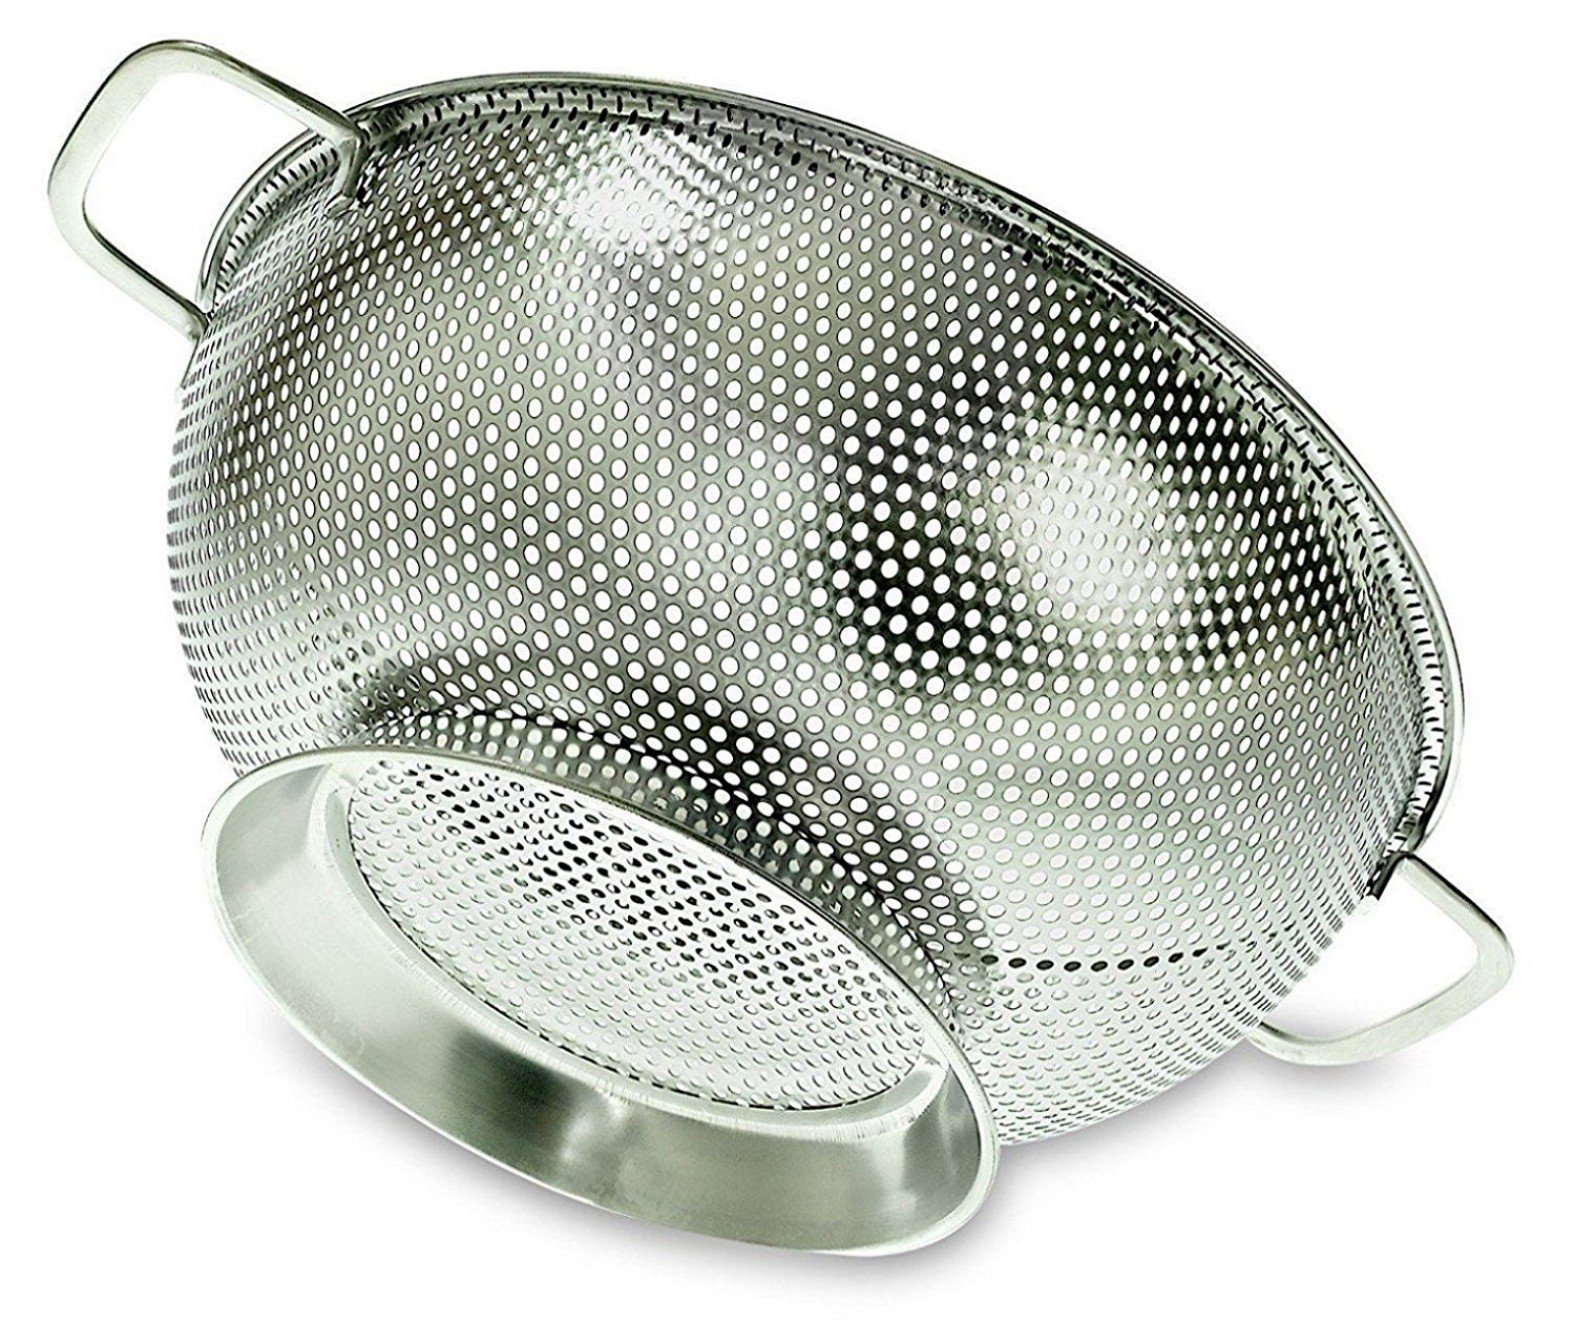 PriorityChef Colander, Stainless Steel 3 Qrt Kitchen Strainer With Large Stable Base by Priority Chef